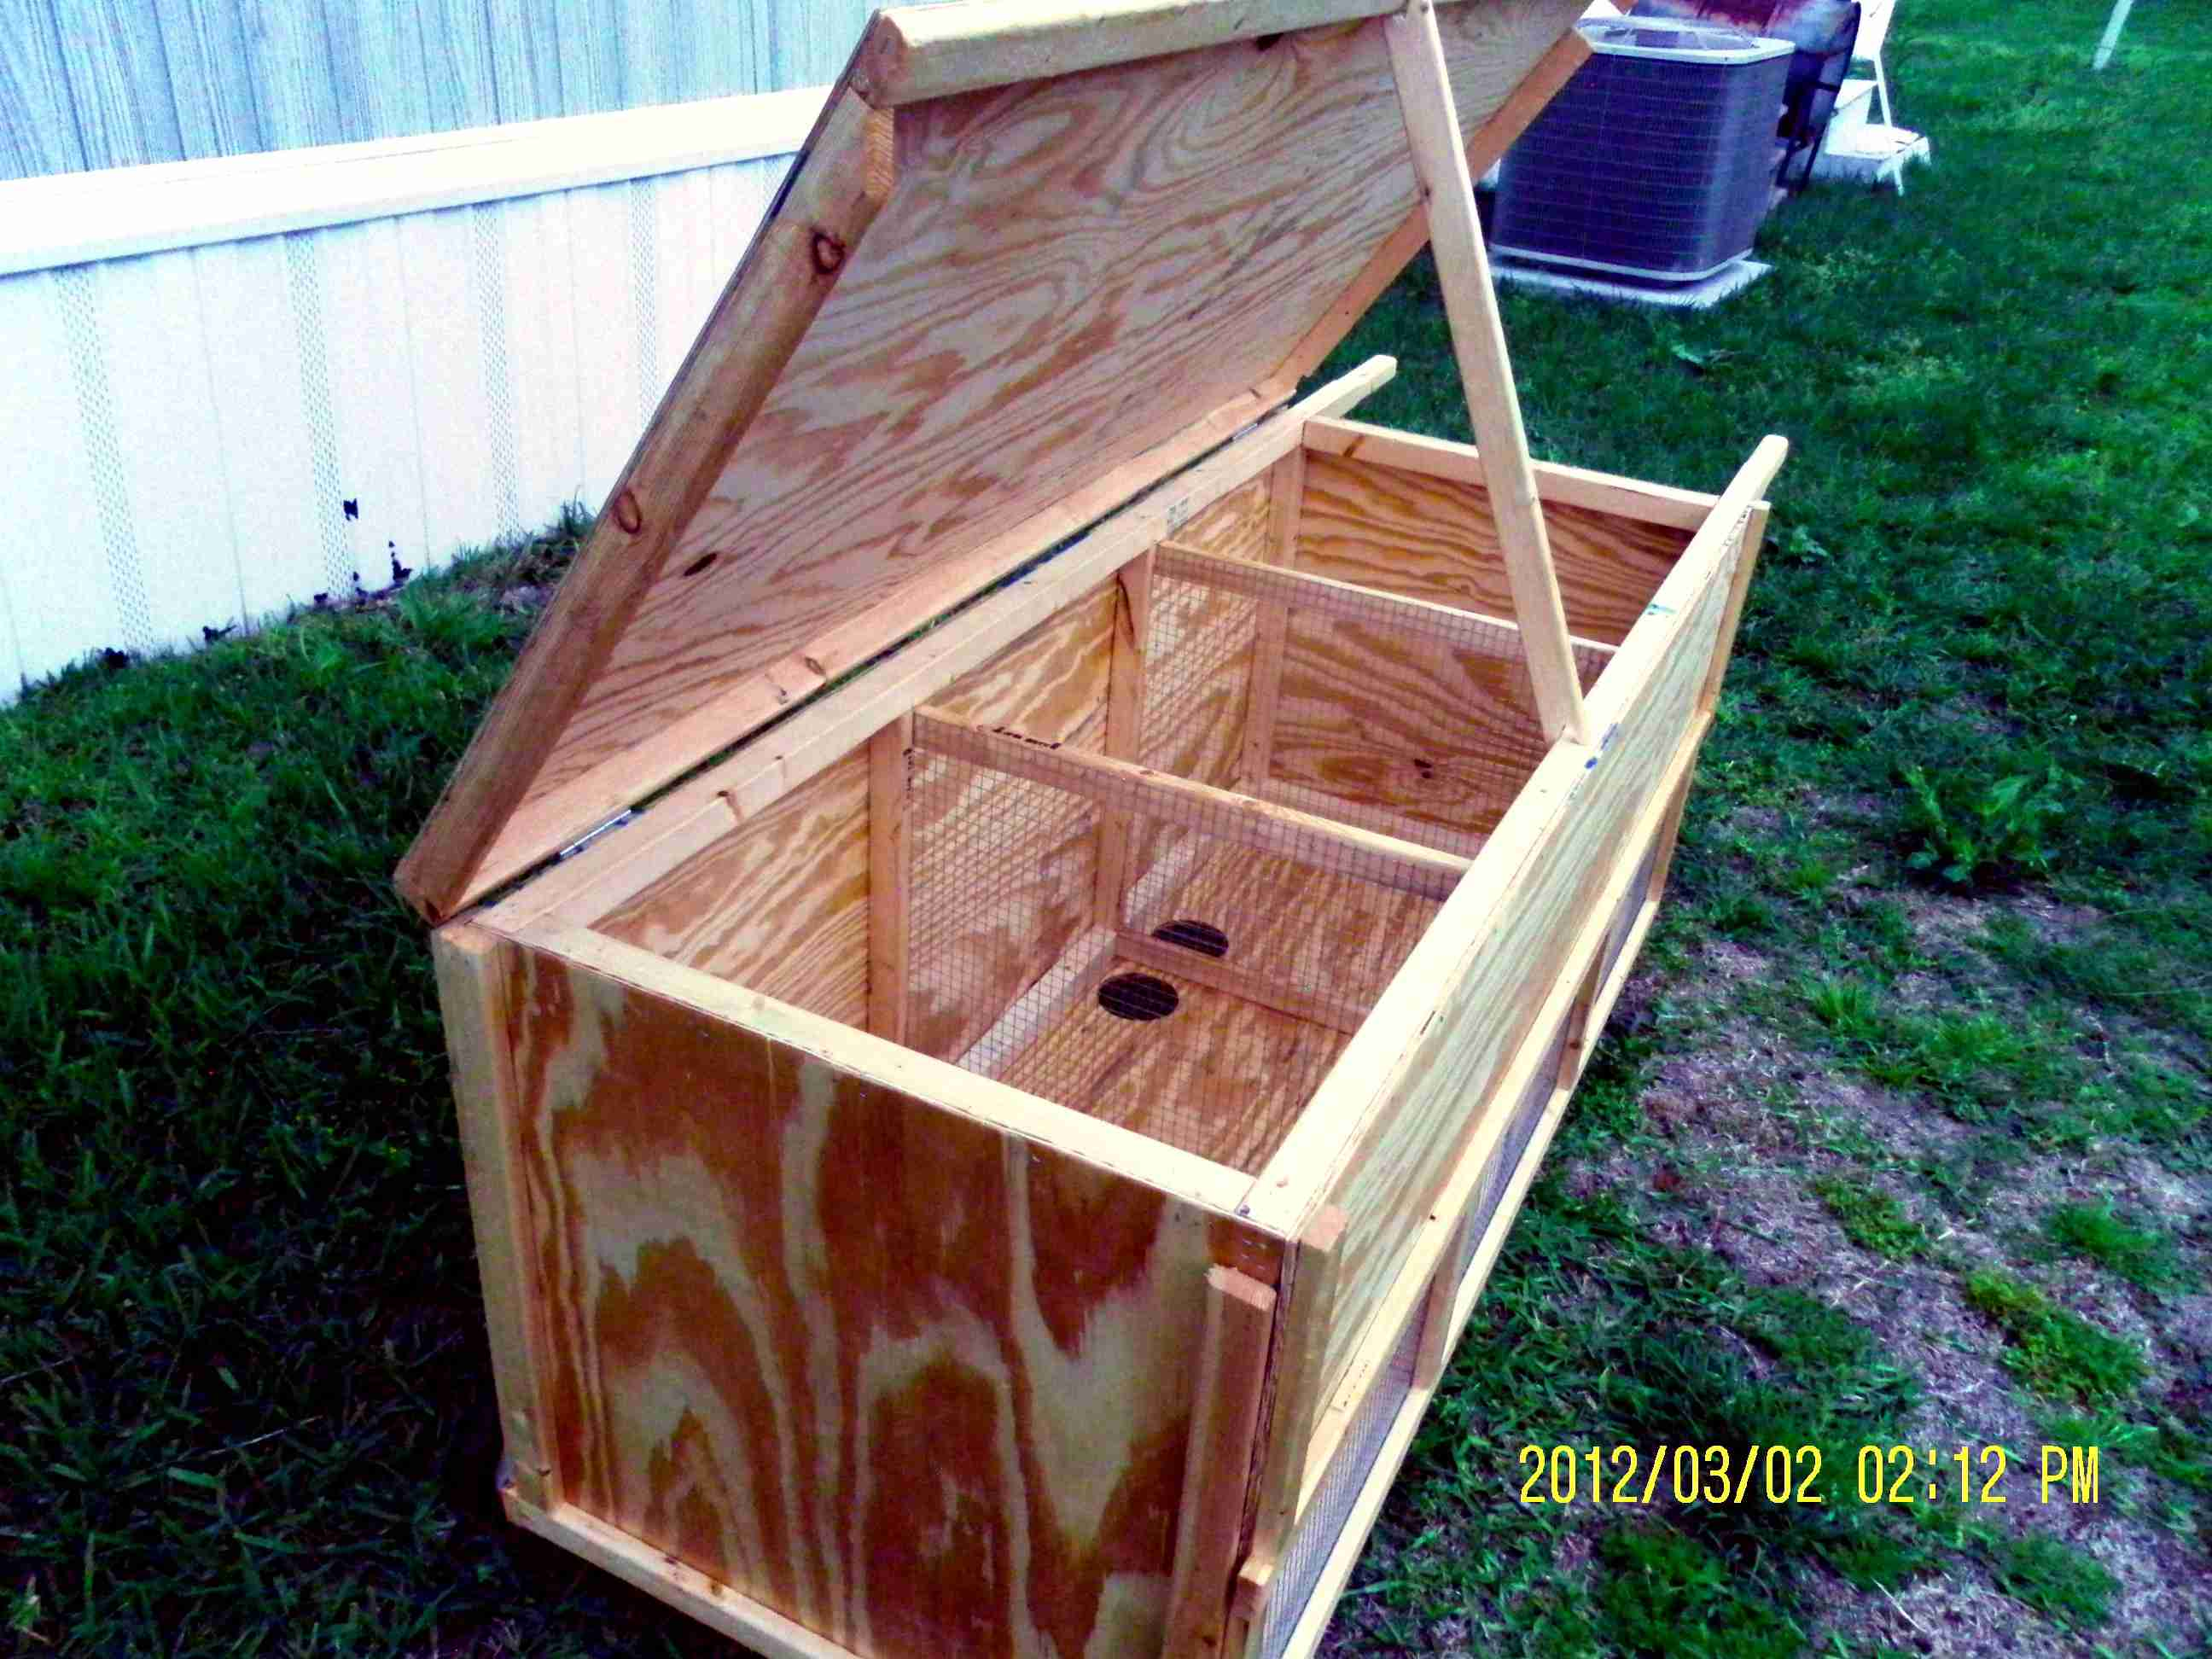 Moveable Rabbit Hutch - Multi Unit (10).